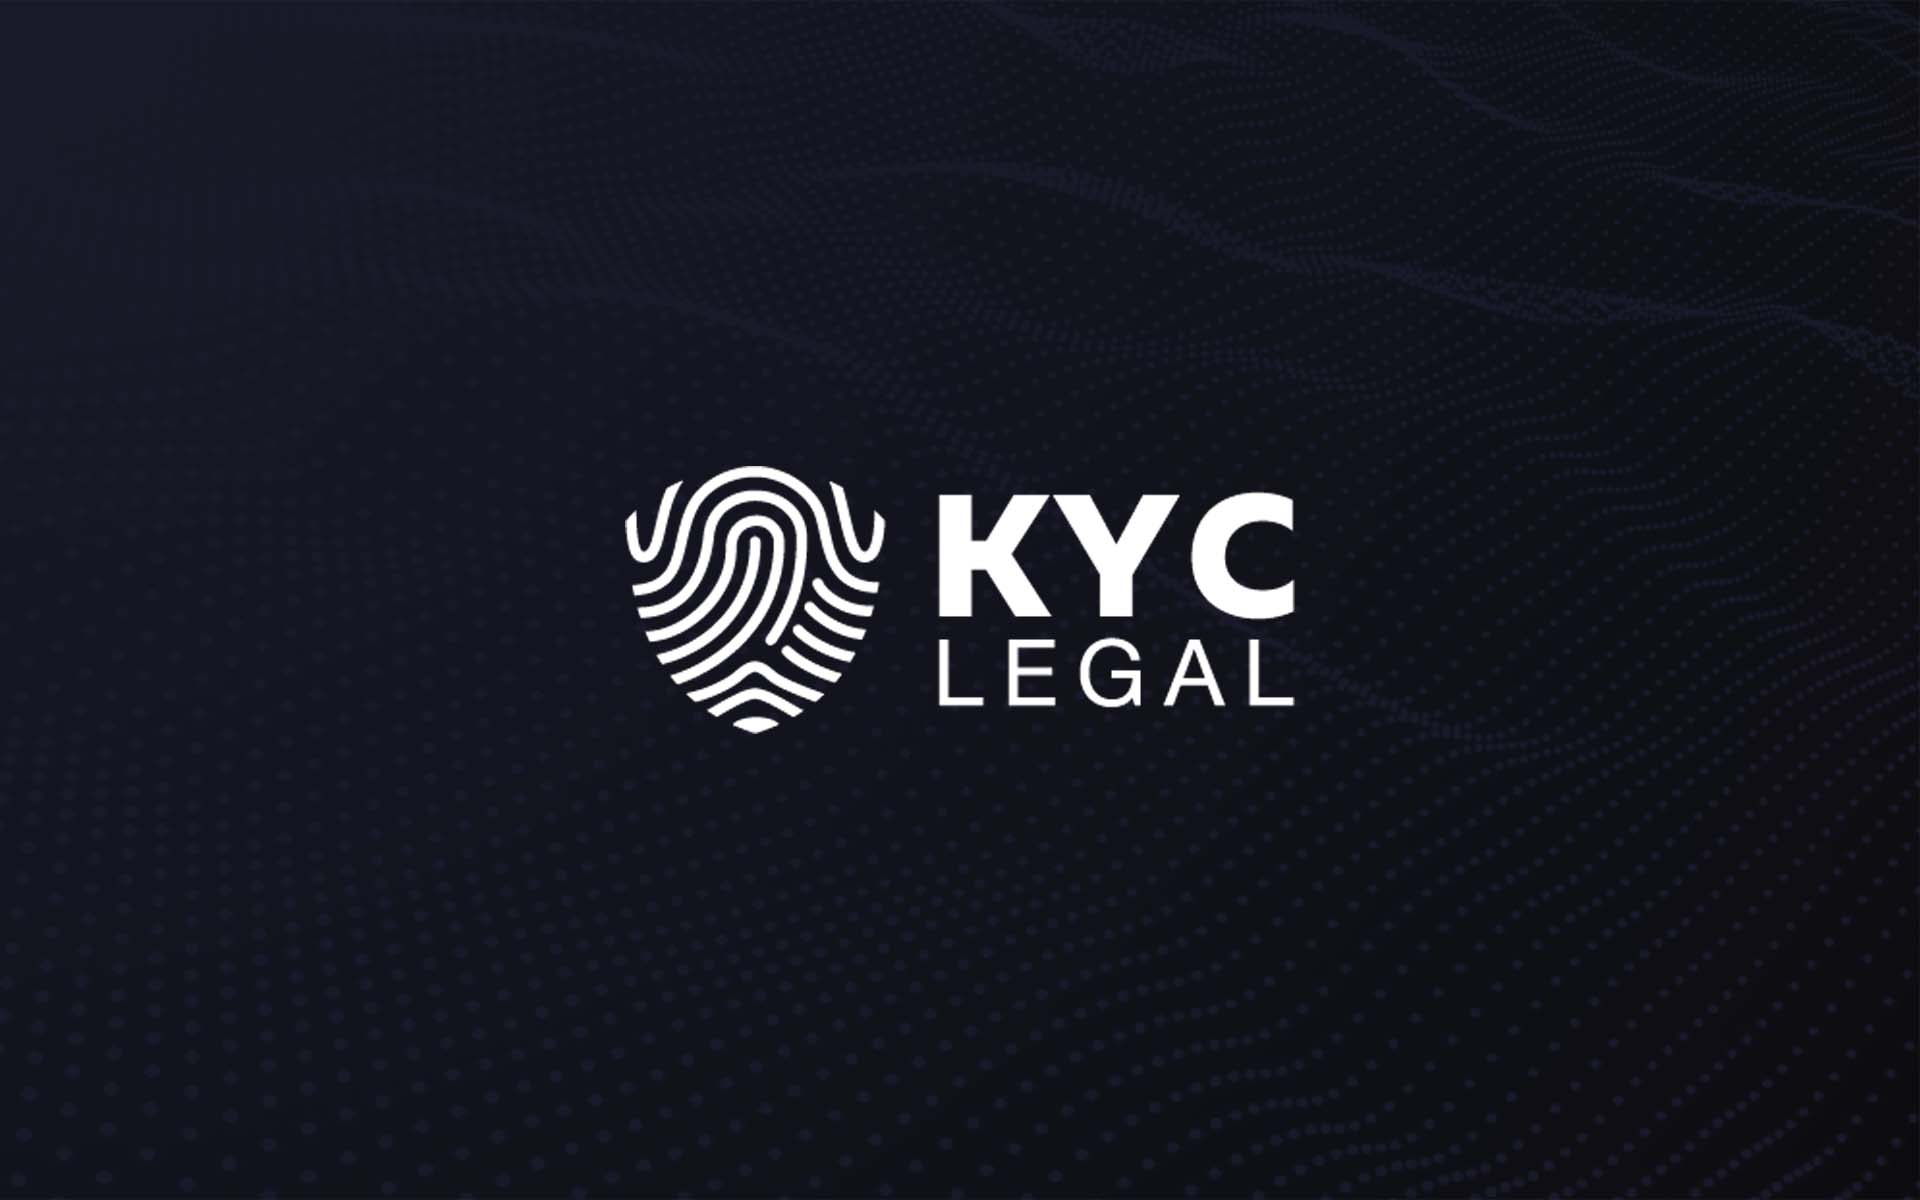 KYC.Legal Founder: 'We are Creating a Global Universal Personal Identification Alternative'